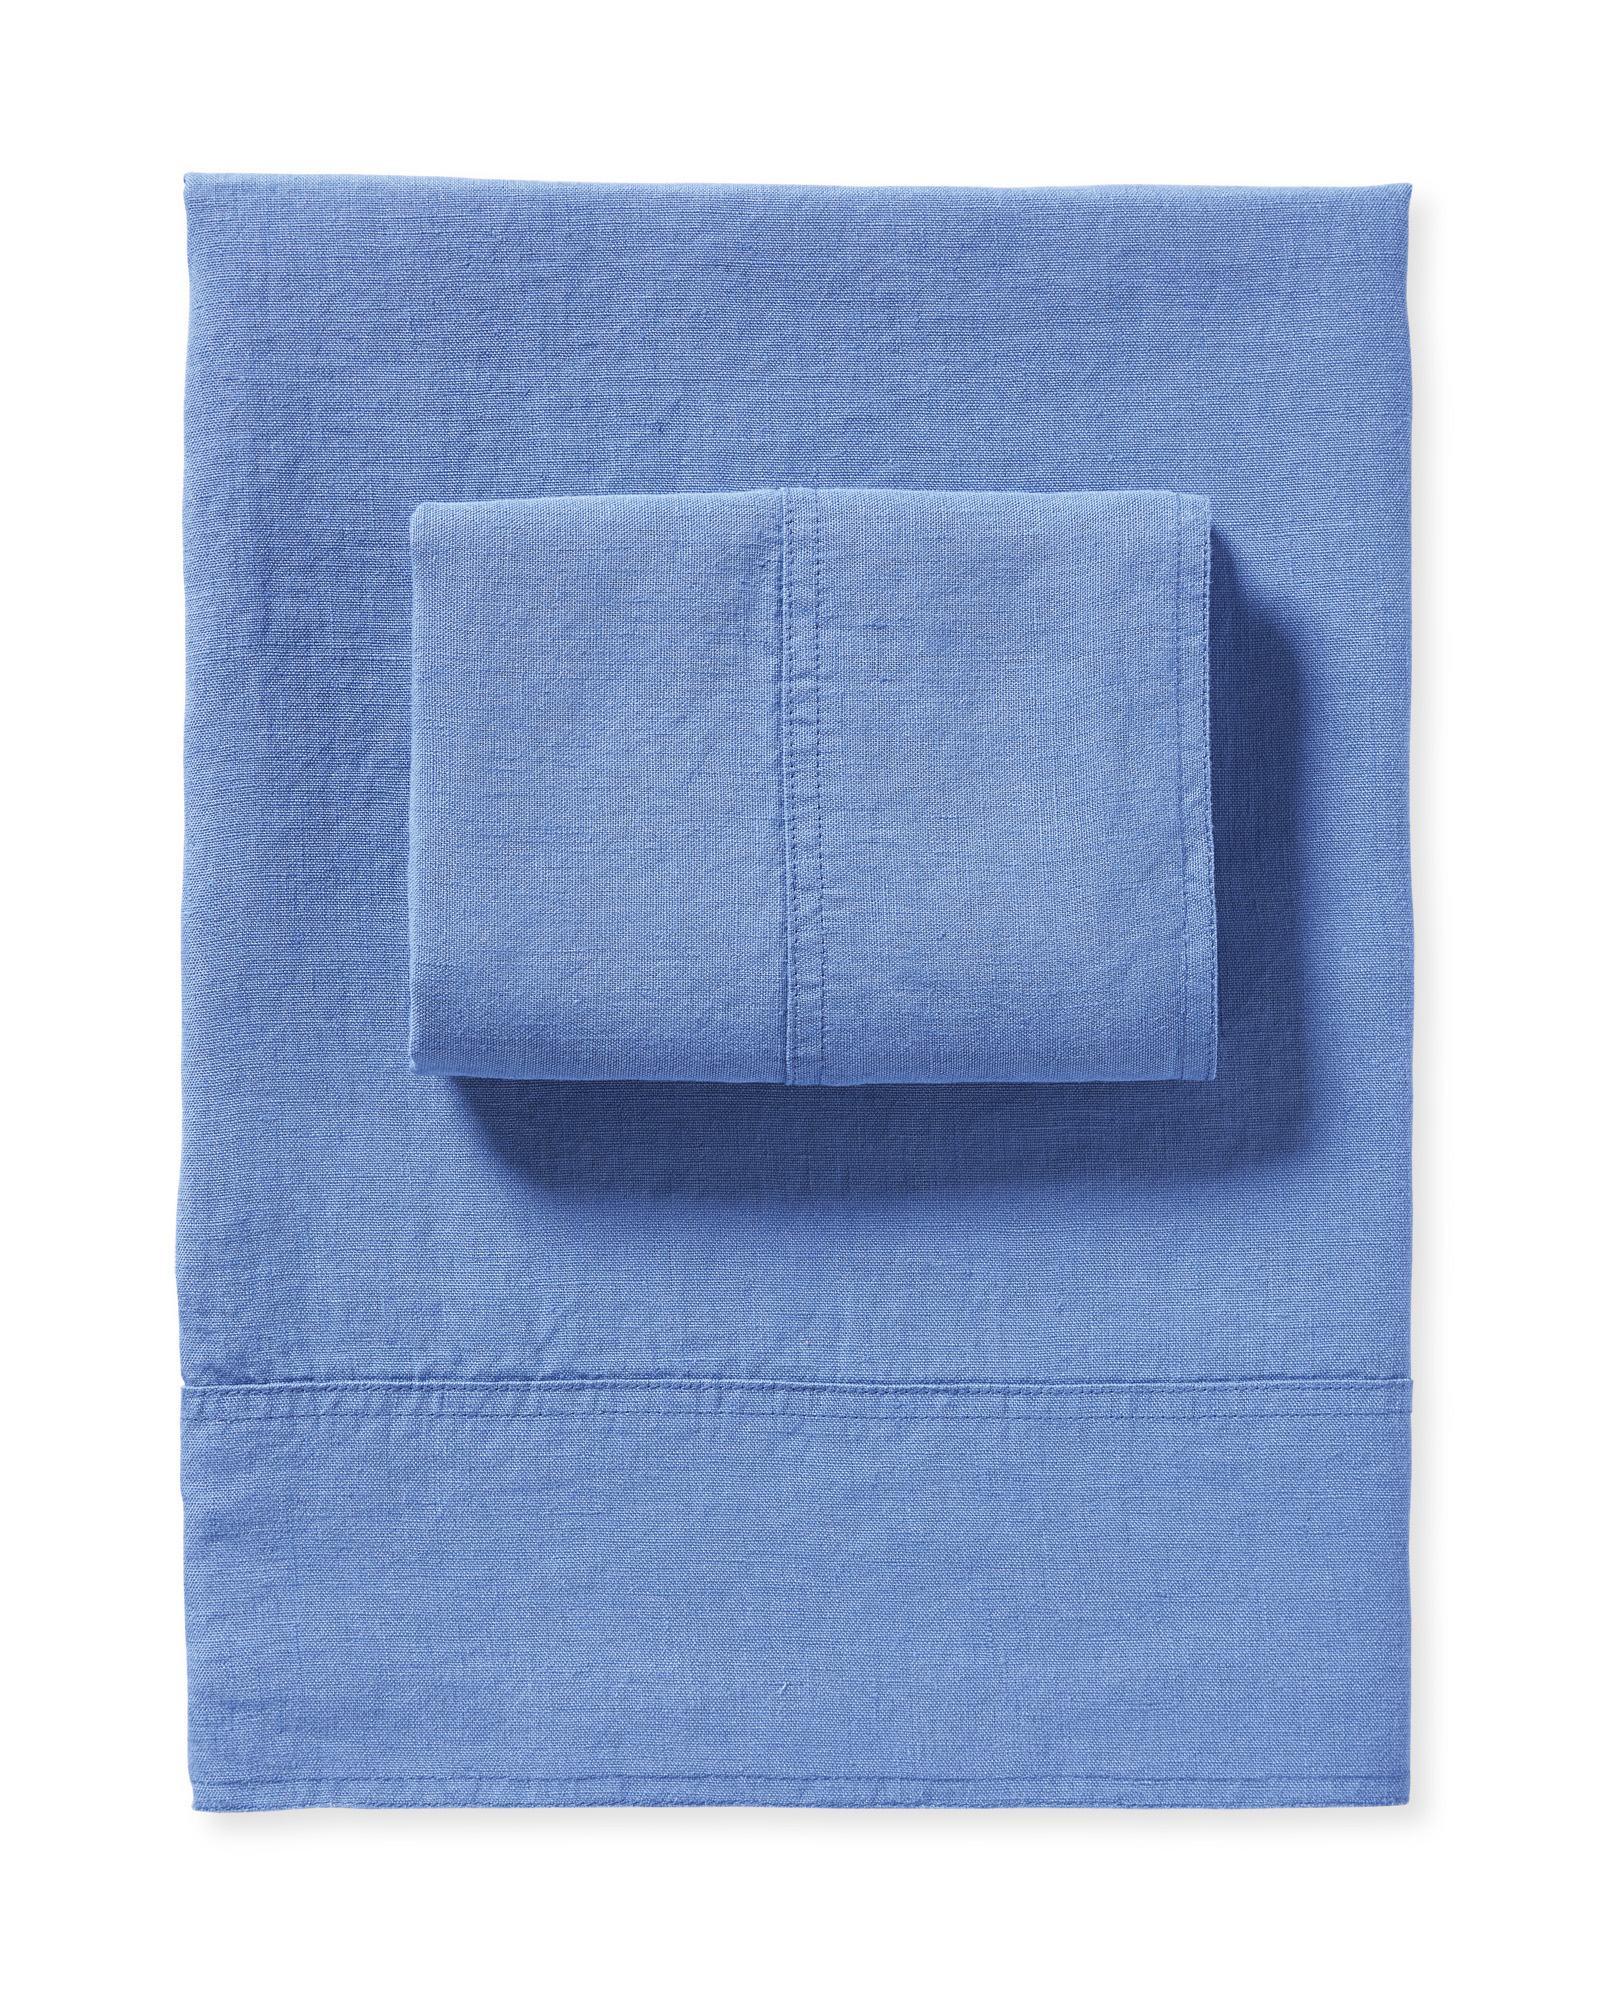 Positano Linen Sheet Set, French Blue